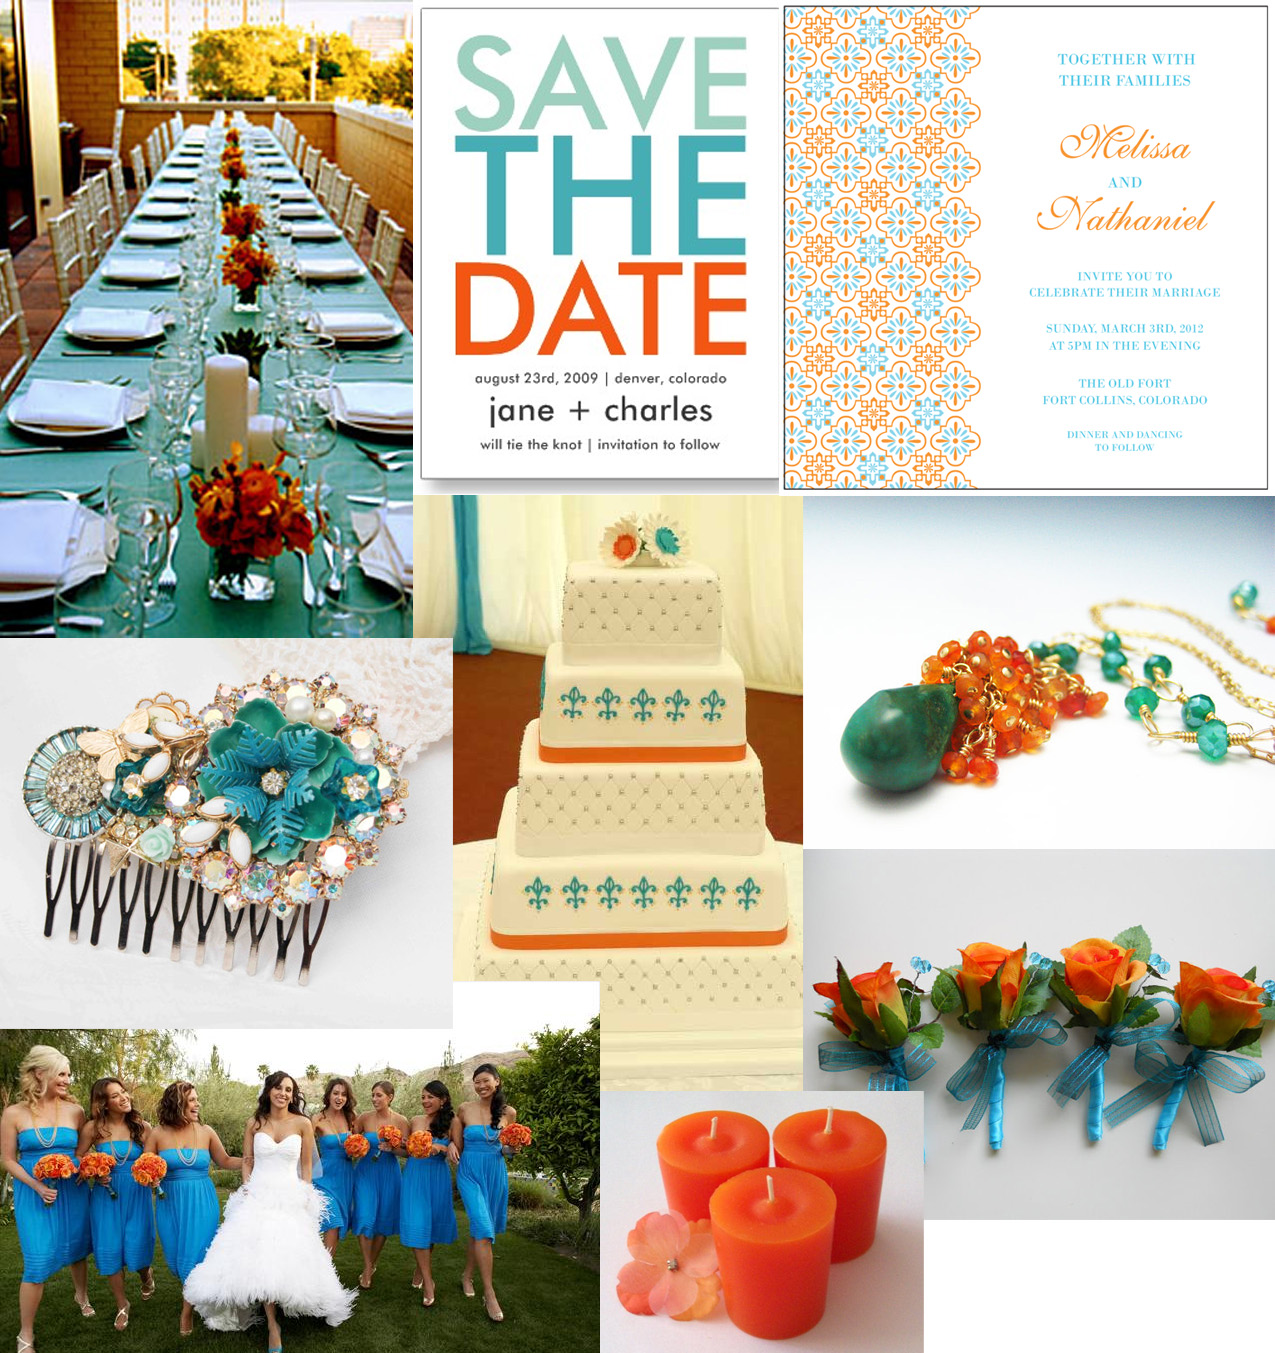 Orange and Aqua Wedding Cake http://sofiainvitationsblog.com/tag/orange/